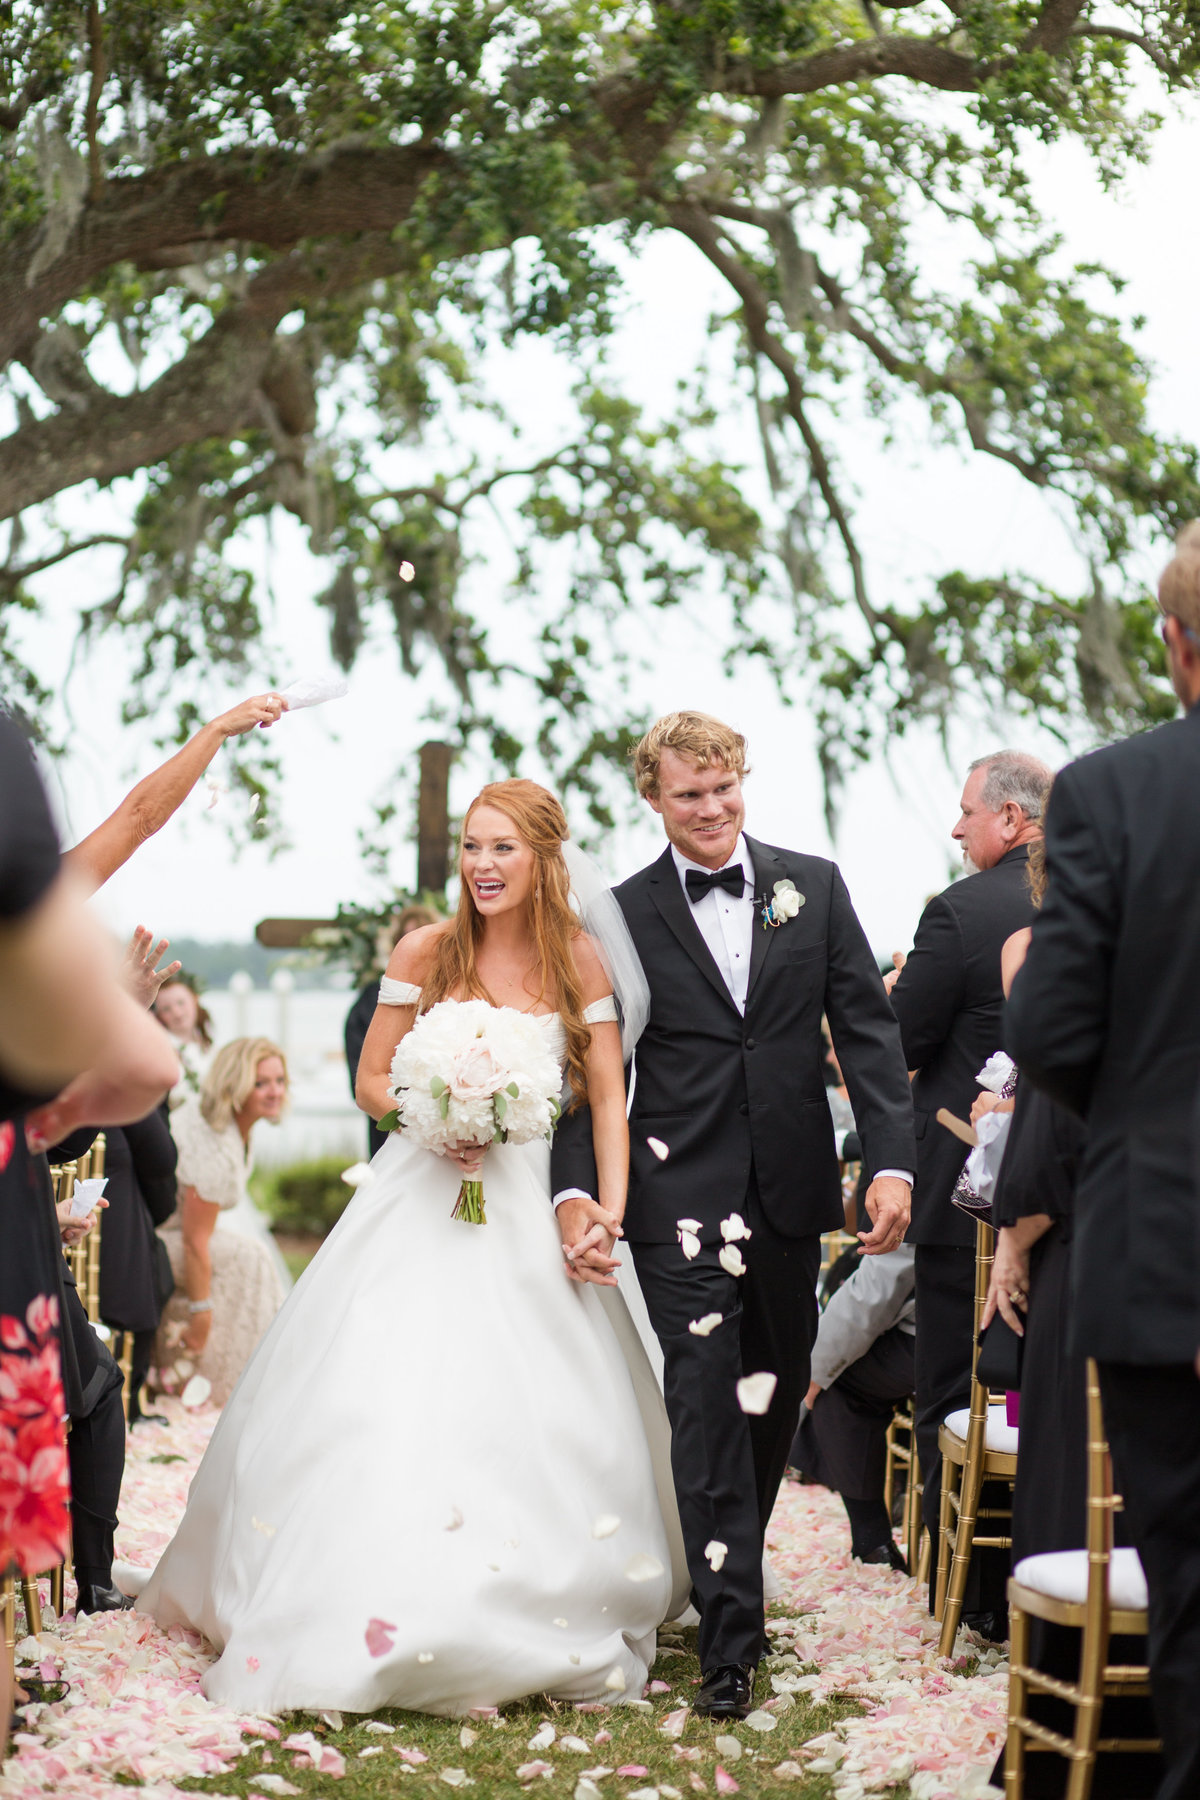 bride and groom walking down aisle with rose petals thrown at them. savannah yacht club wedding.